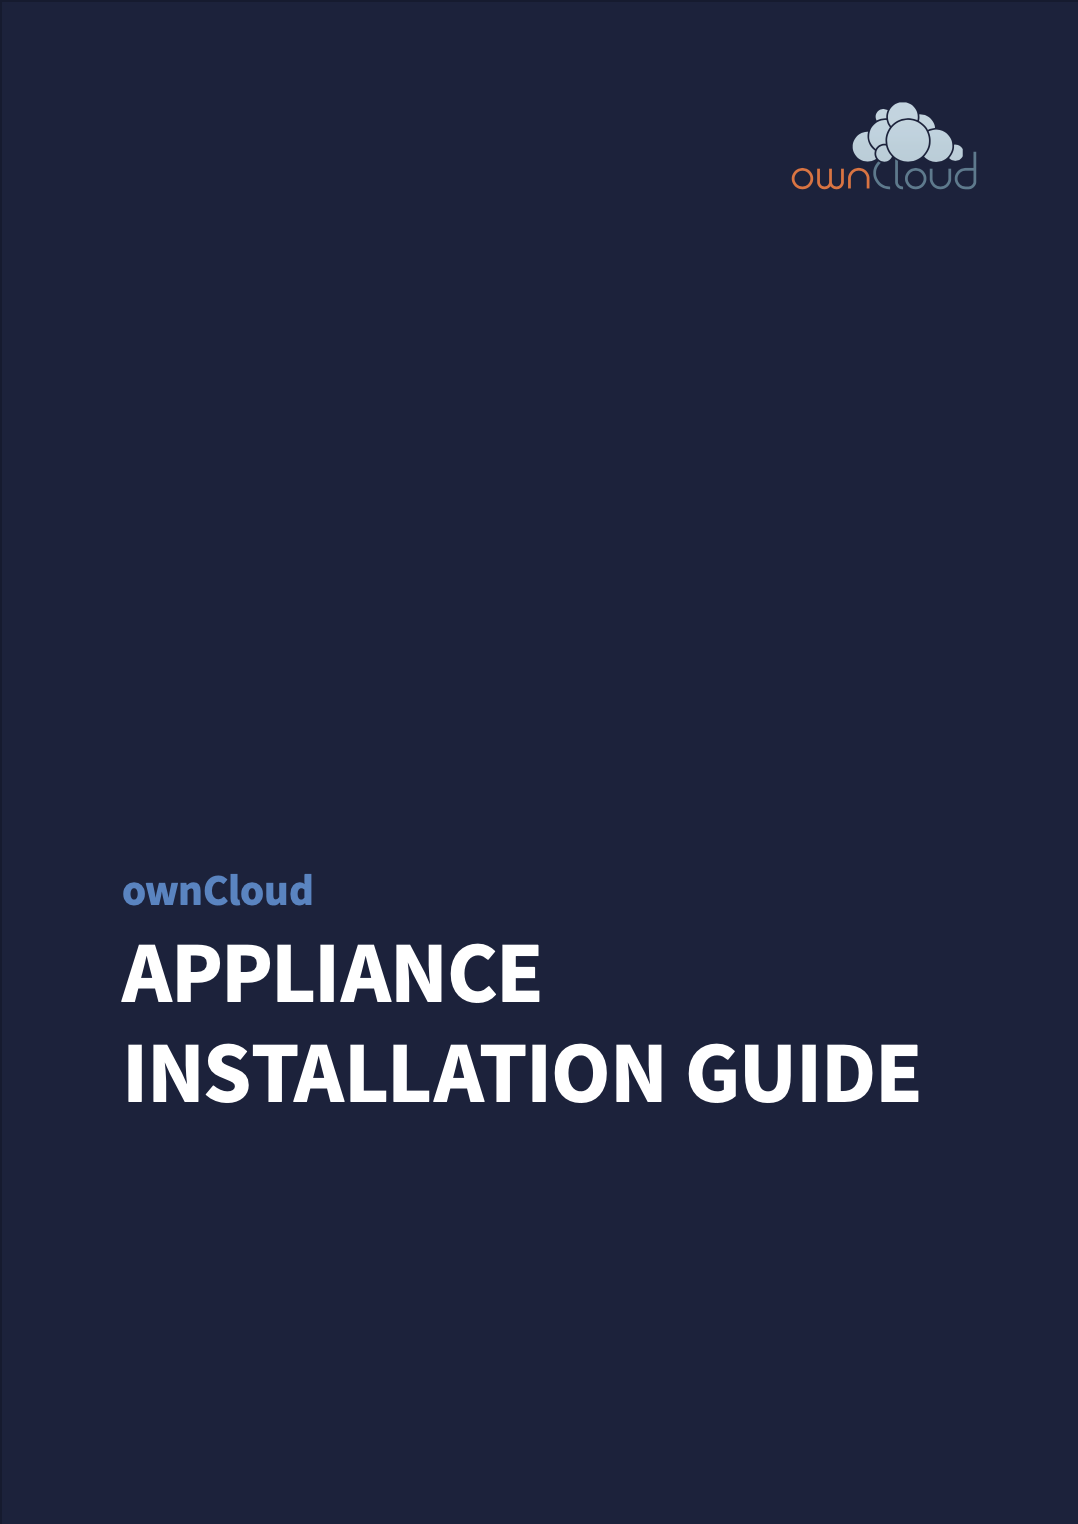 ownCloud Appliance installation guide